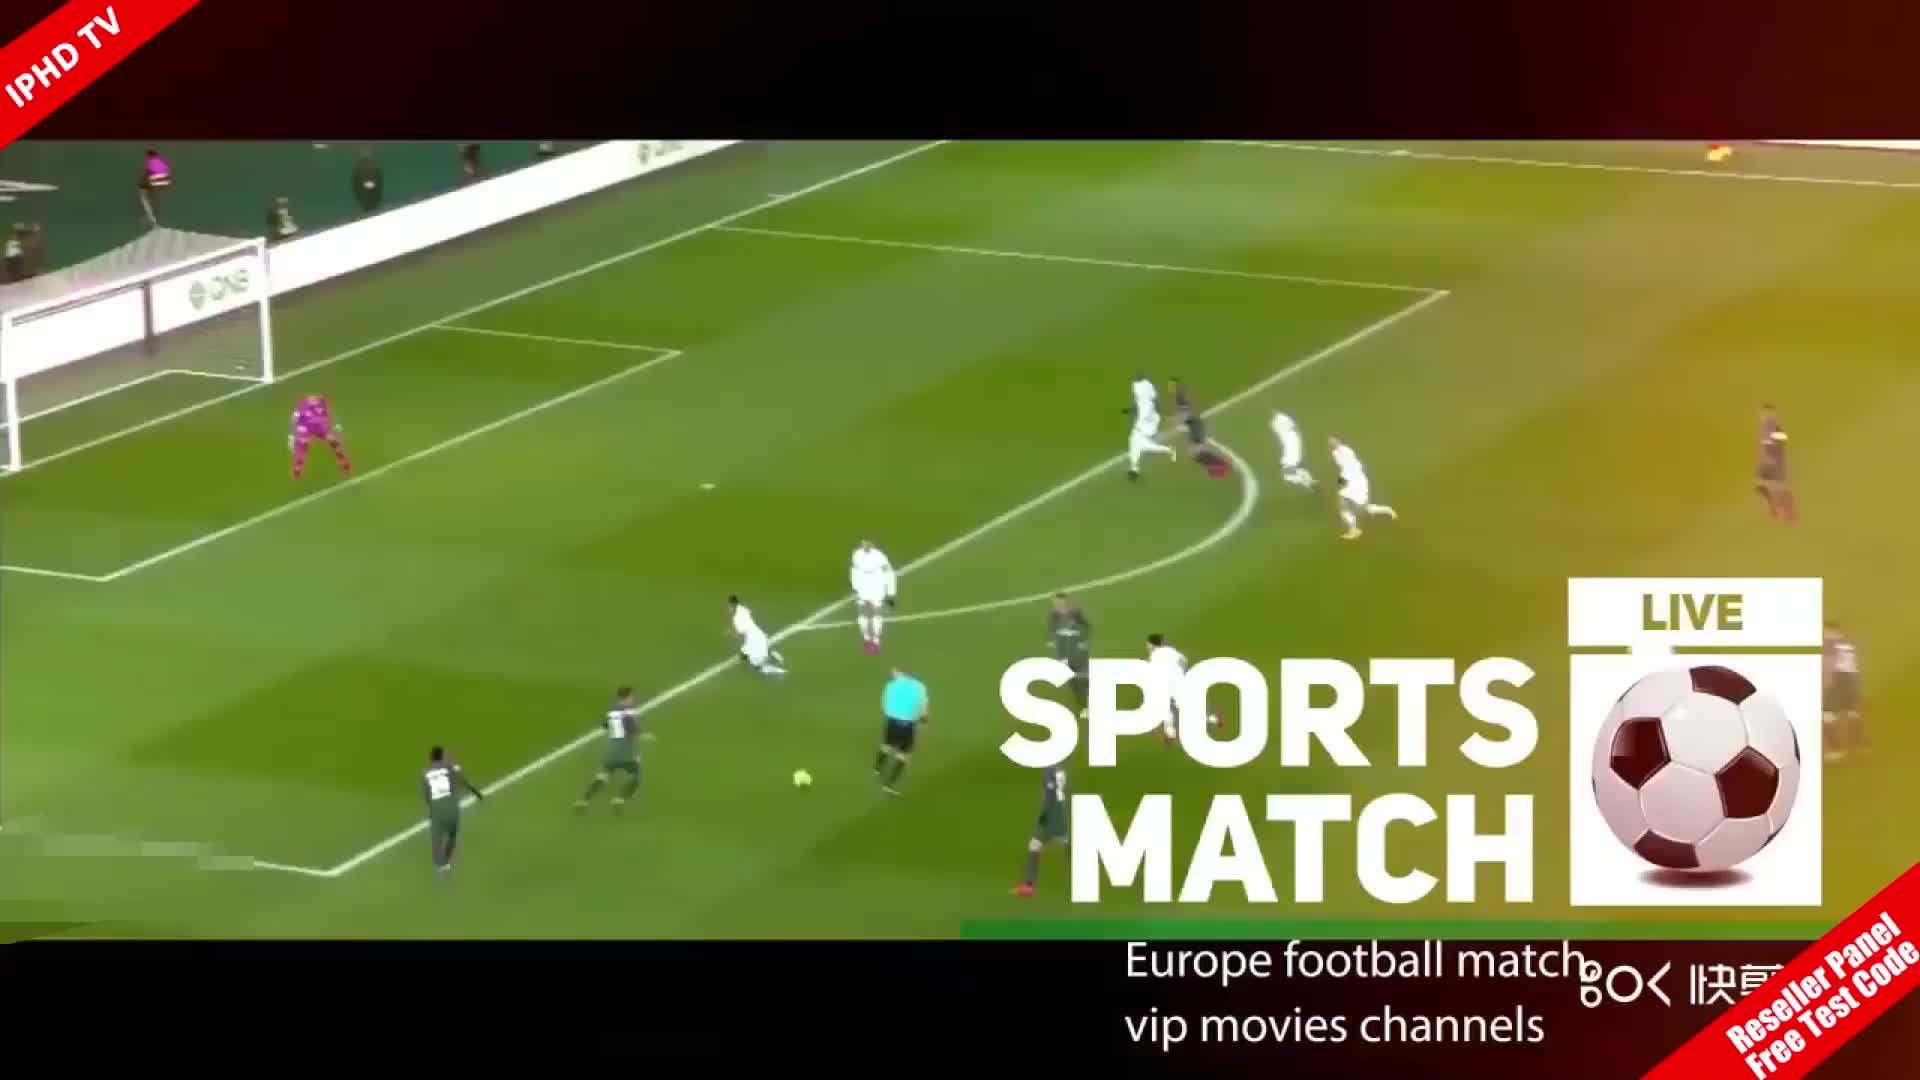 Europe Iptv With 1 Year Iptv Box Subscription 5000+ Live For Smart Tv M3u  Tv Box Android Ios France Abonnement Iptv - Buy Iptv,254 Iptv Box,Iptv